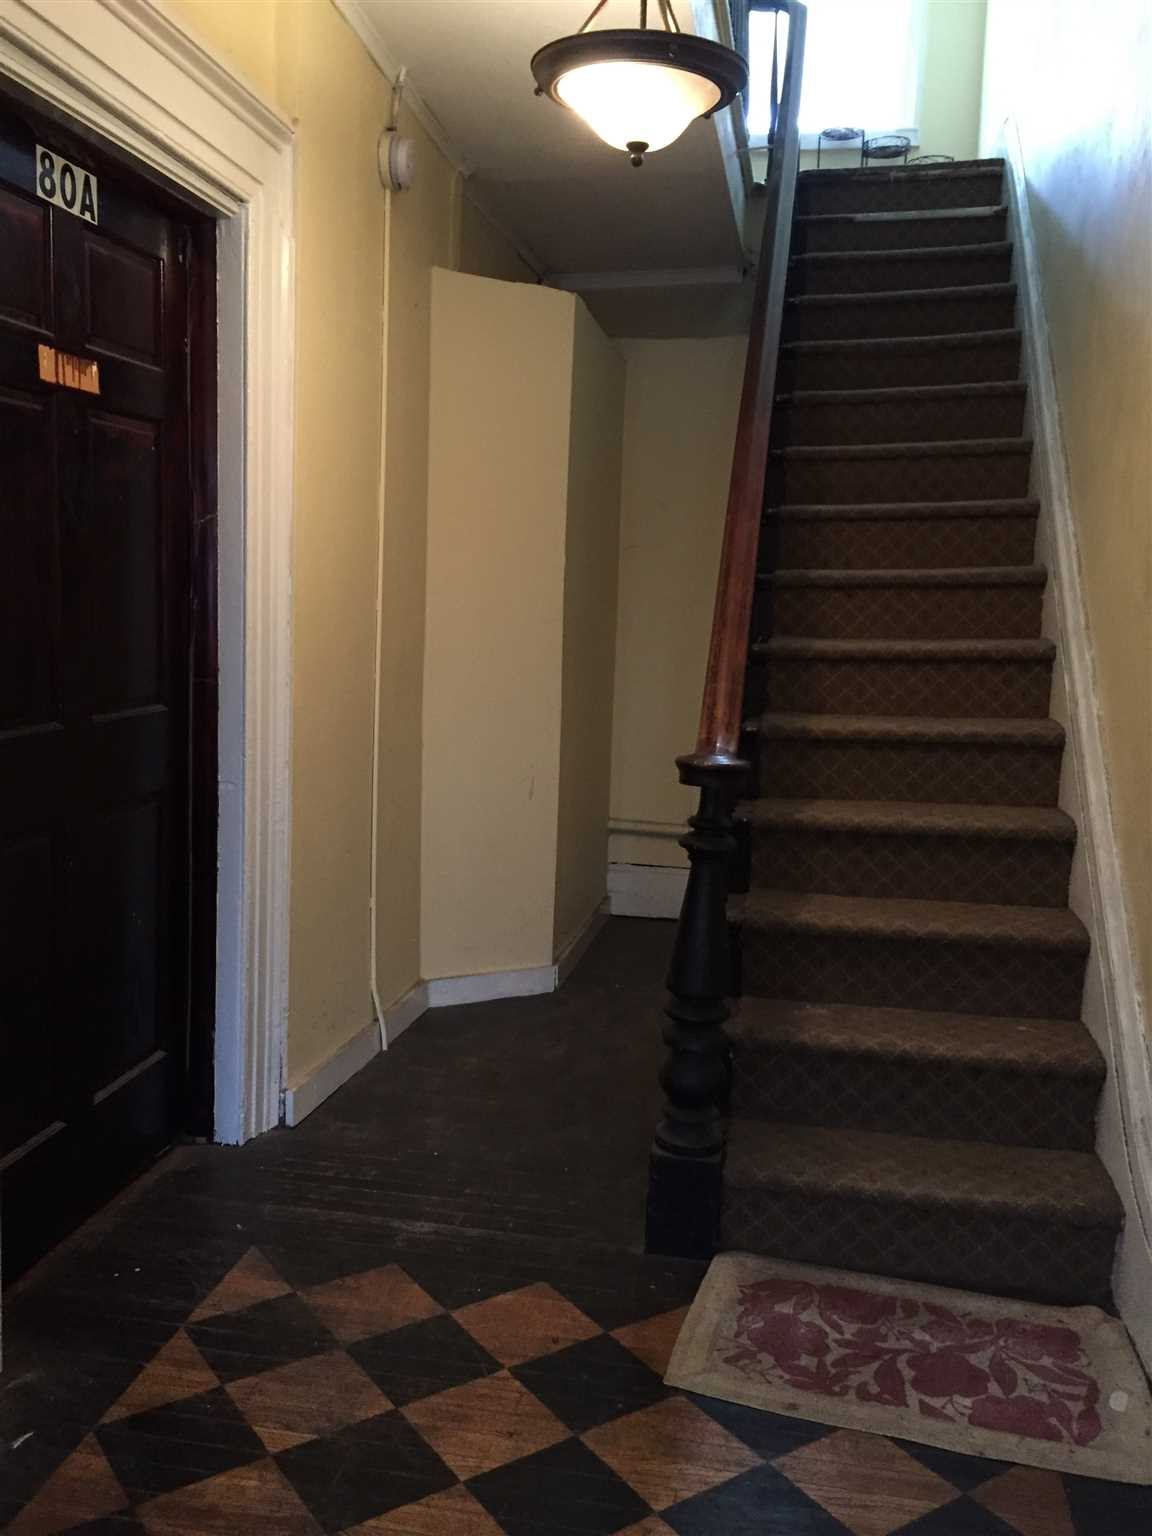 Additional photo for property listing at 78 GARDEN Street 78 GARDEN Street Poughkeepsie, New York 12601 United States